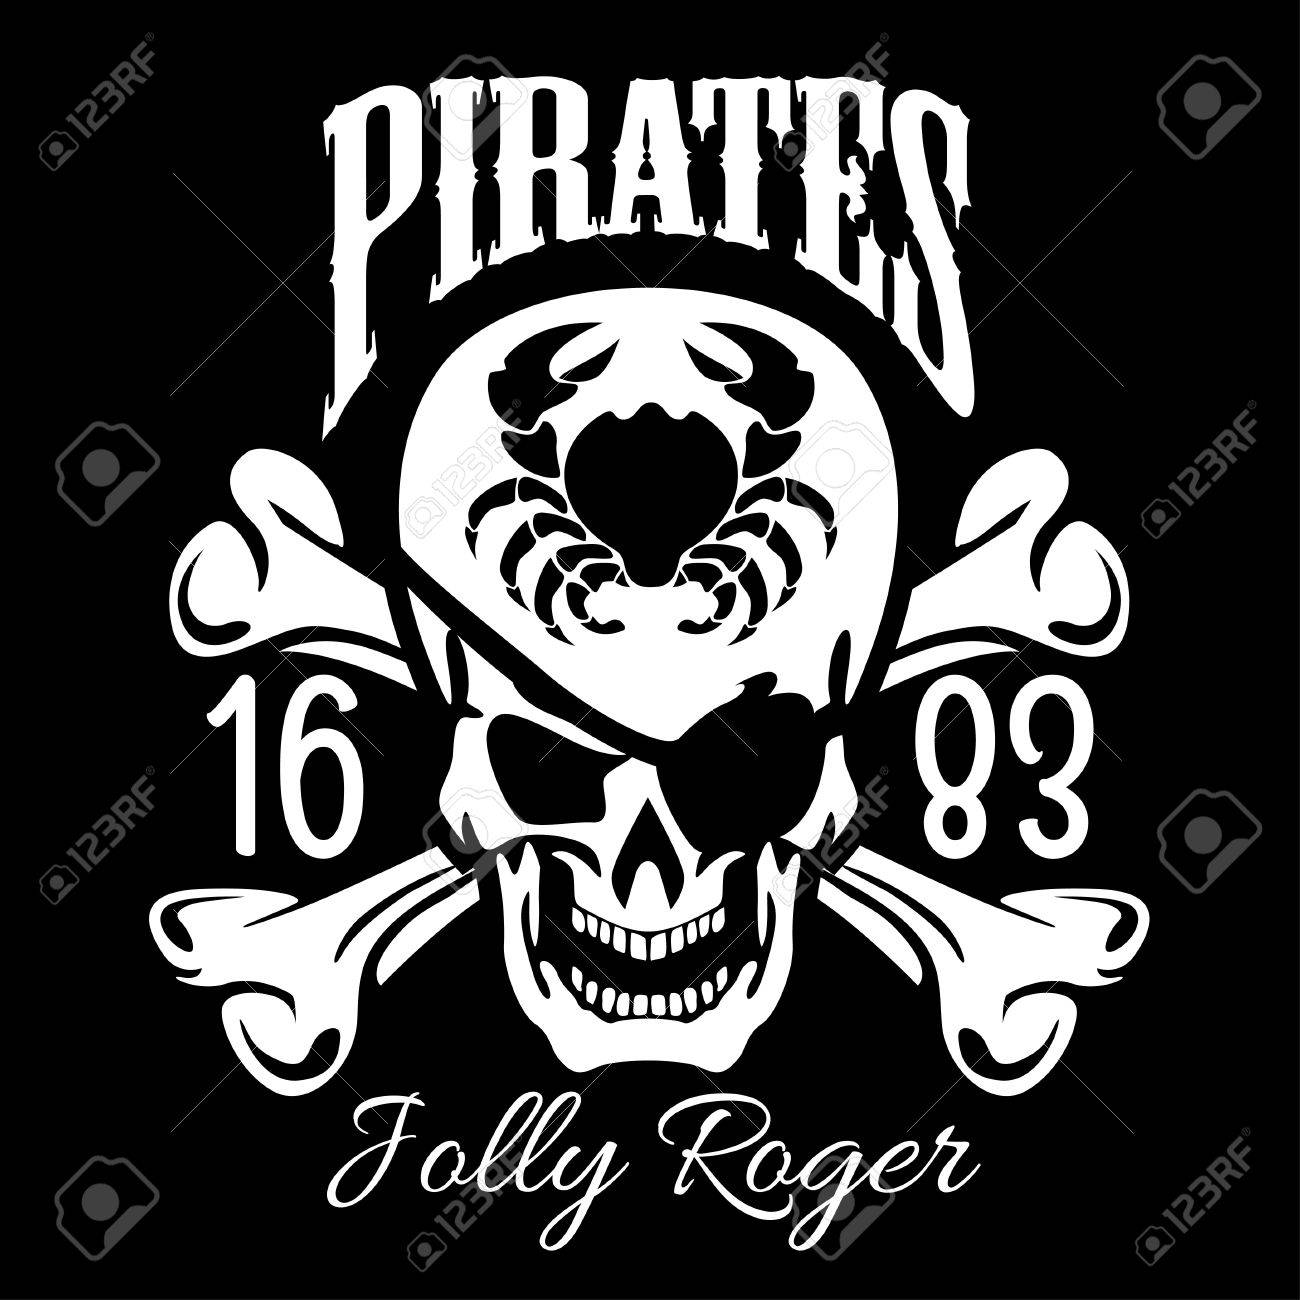 Pirates jolly roger symbol vector poster of skull with pirate pirates jolly roger symbol vector poster of skull with pirate eye patch crossed bones buycottarizona Images